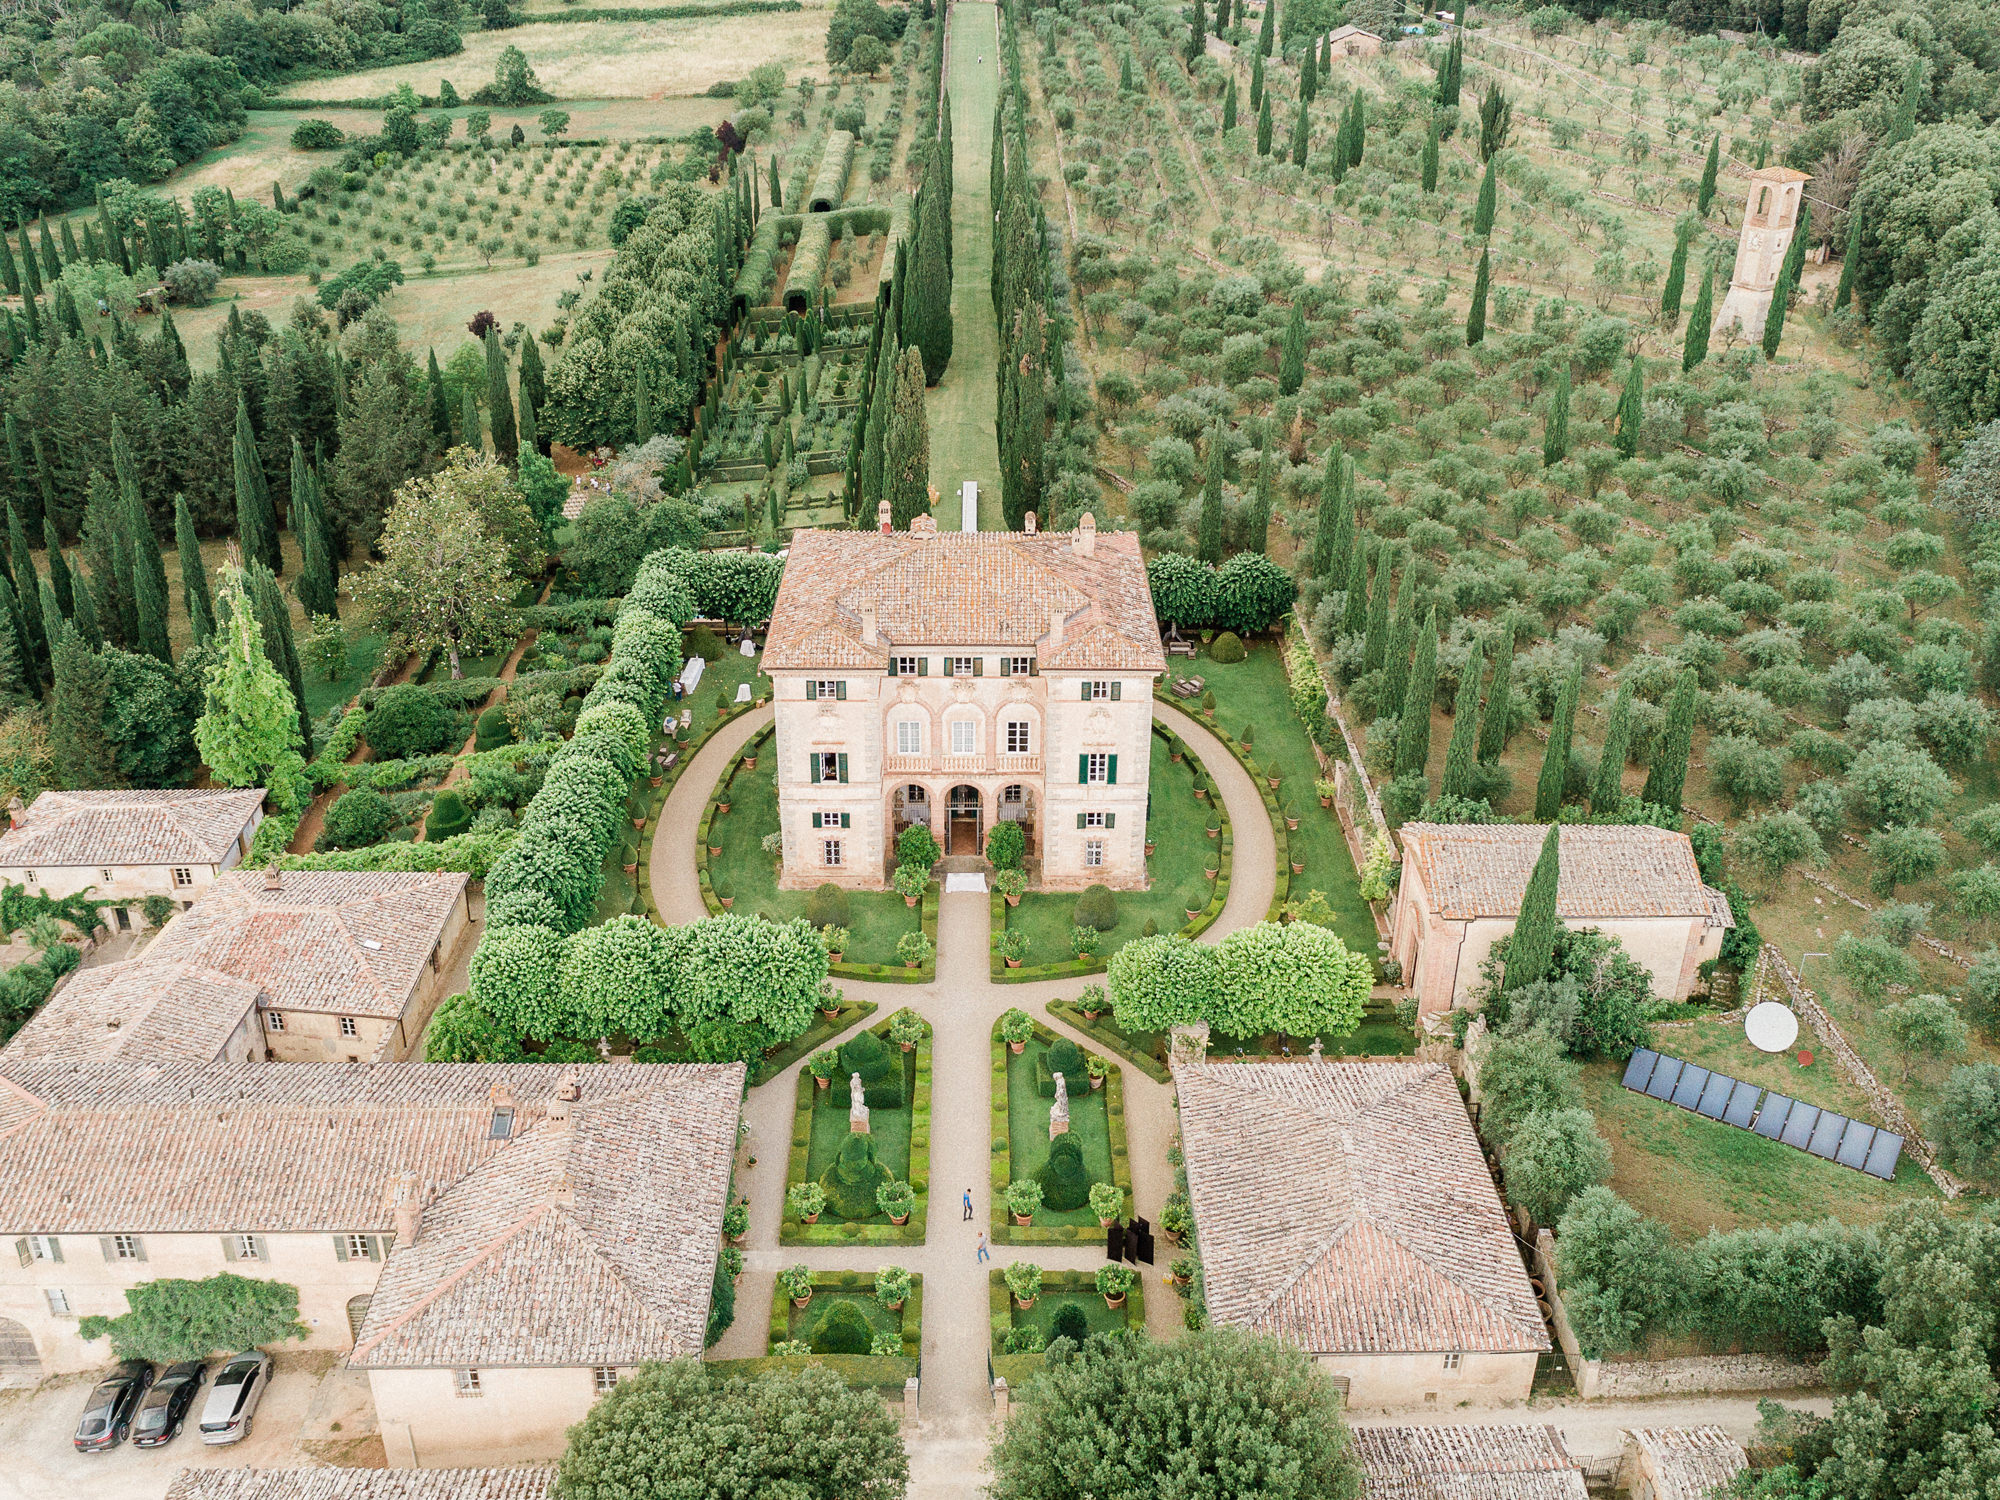 Villa Centinale aerial view  - photo by Gianluca Adovasio Photography